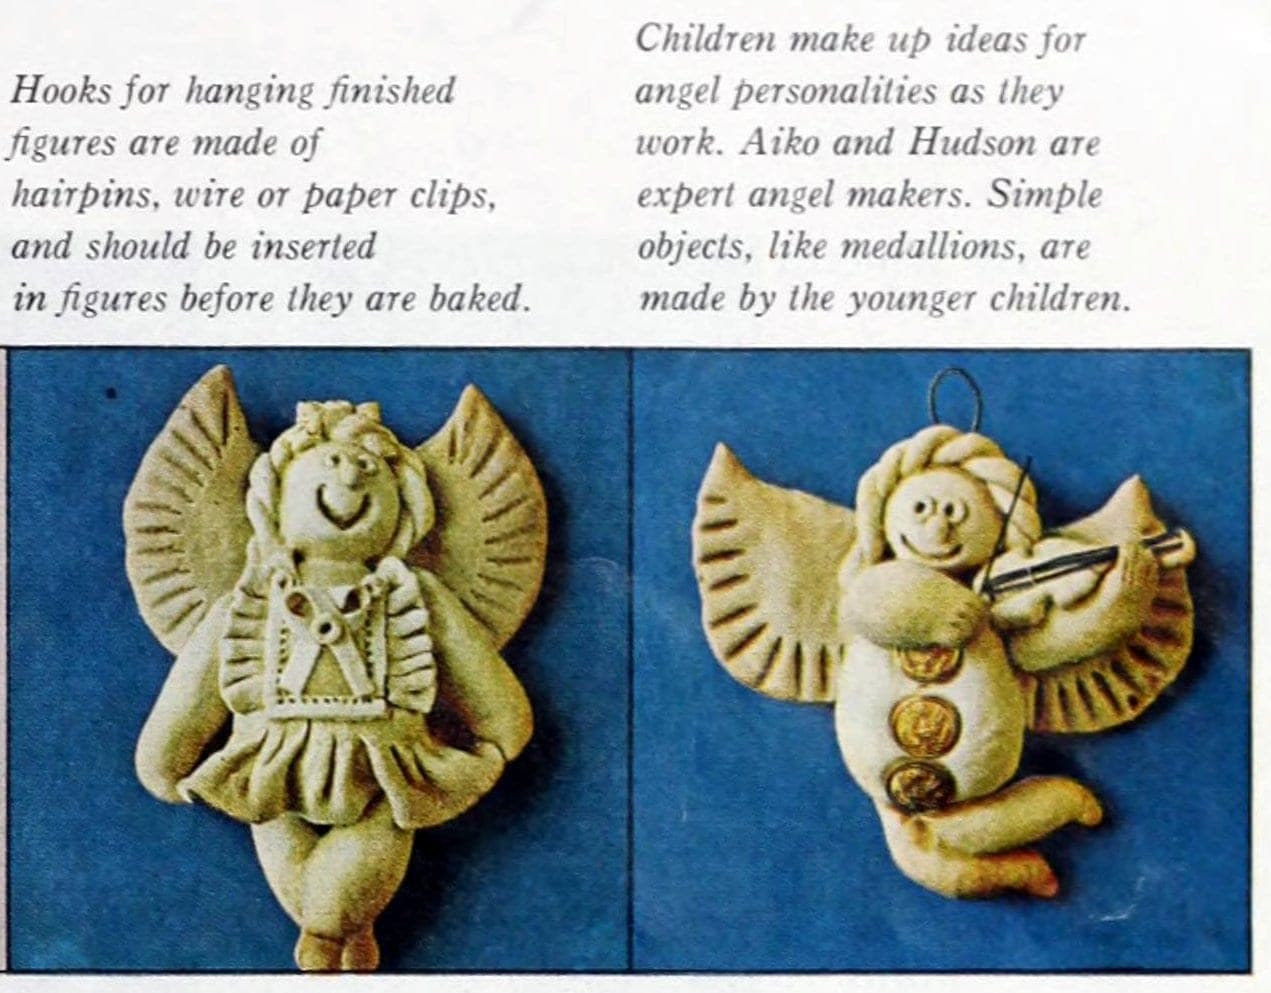 Christmas salt dough ornaments - 1964 craft guide (9)